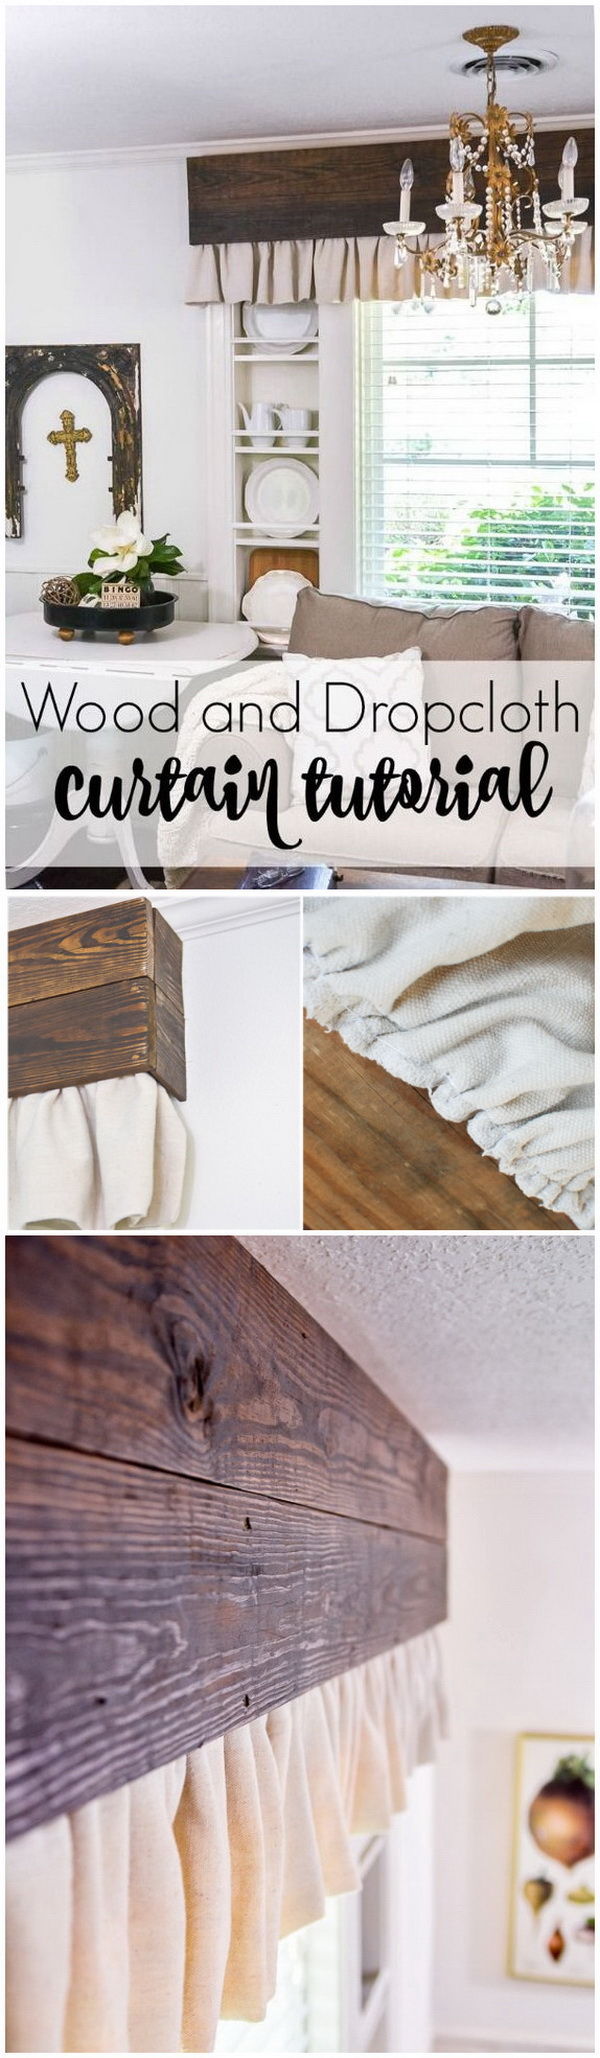 DIY Wood Valance and Dropcloth Curtains.